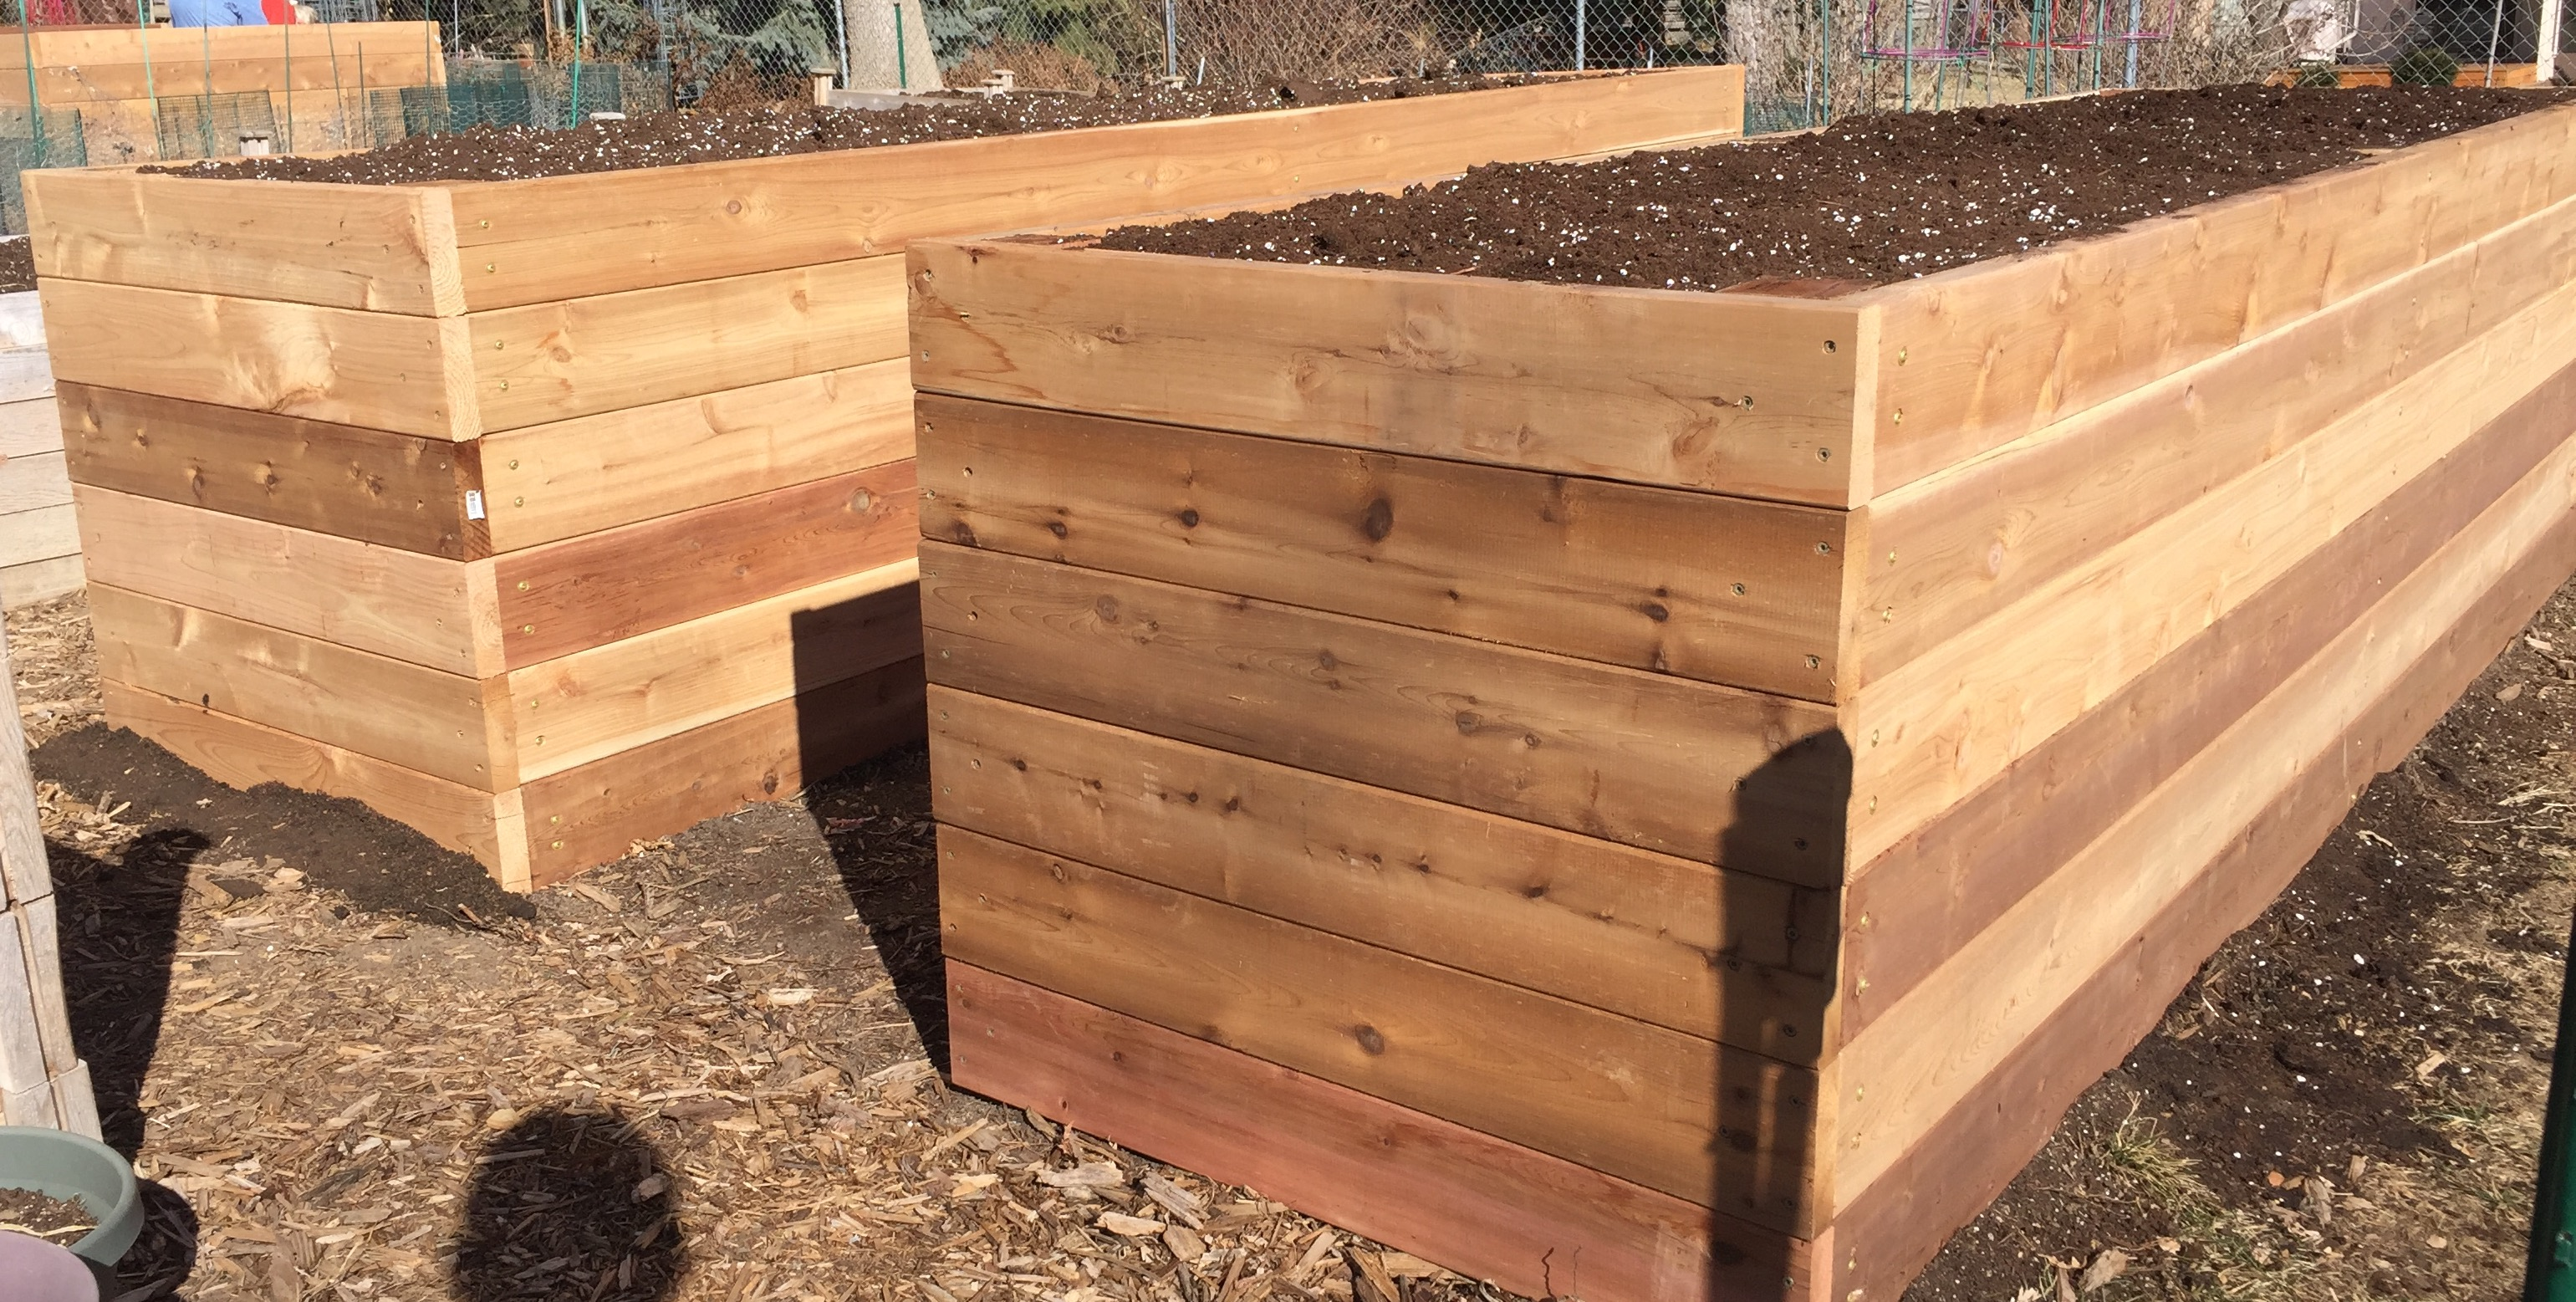 How to build a vegetable garden box - Built Out Of Red Cedar Lumber Raised Garden Boxes Reduce Weeds Are Easy To Pick Produce From And Make Gardening More Fun